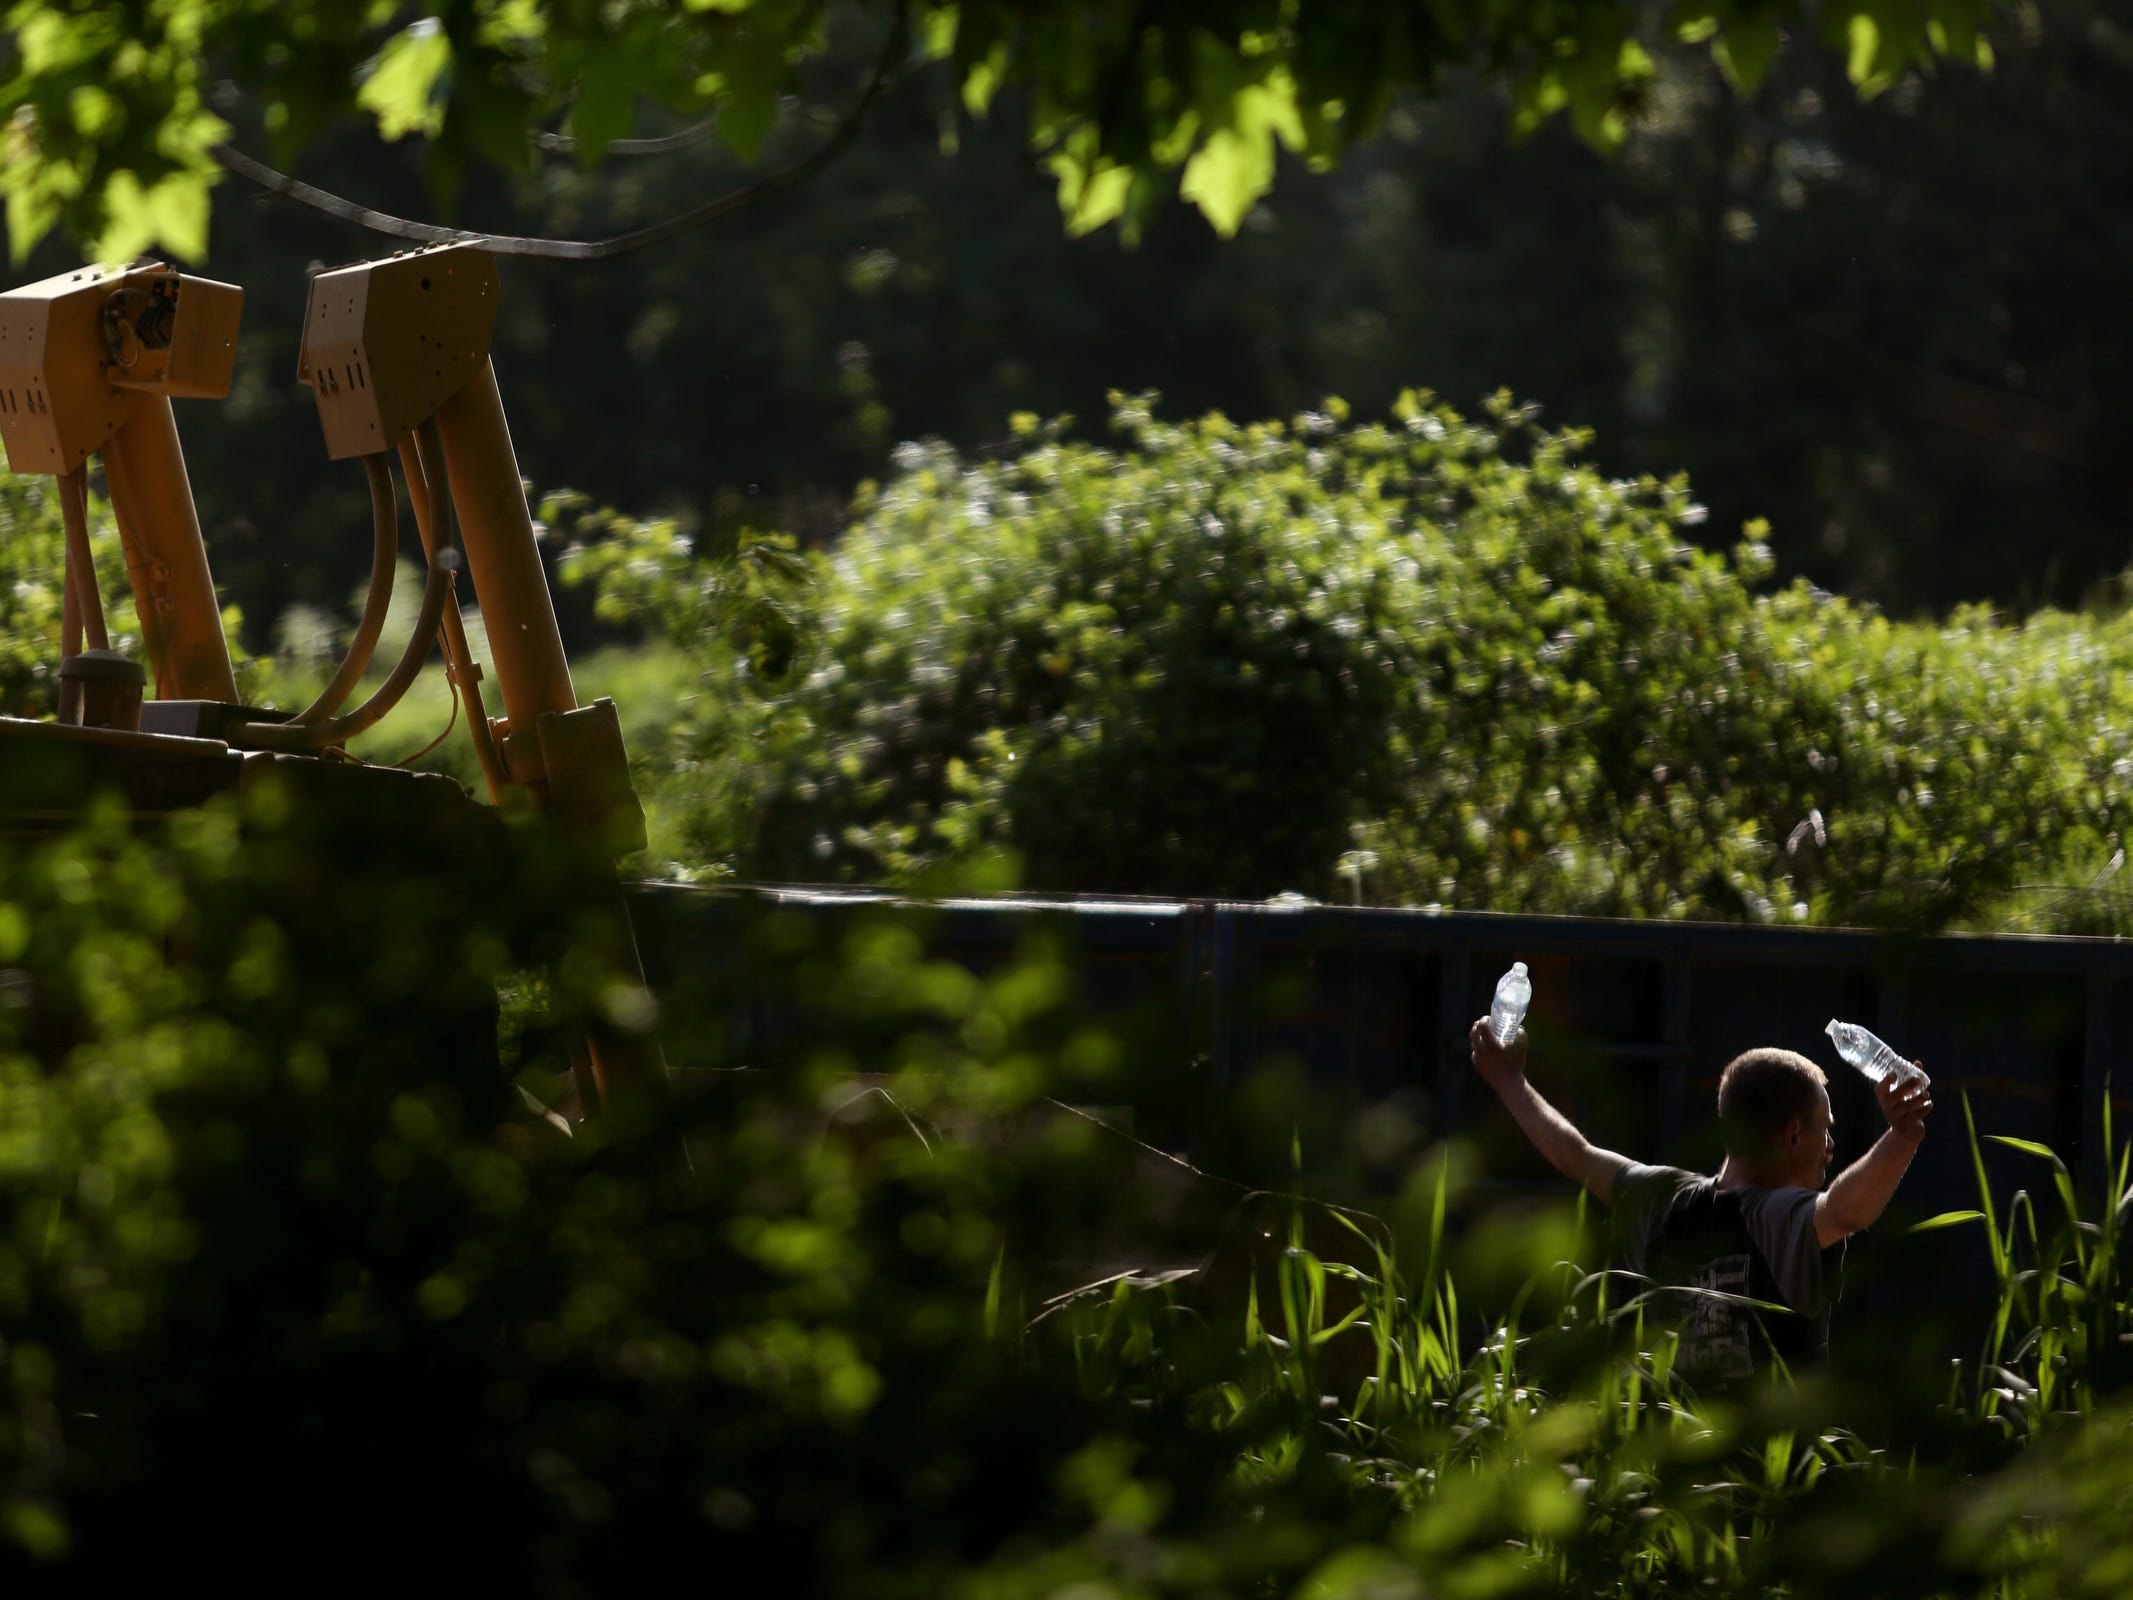 A man living at the homeless camp blocks a bulldozer coming into a privately-owned rock quarry with a homeless camp near Wallace Marine Park in West Salem on May 7, 2019. Signs were posted throughout the camp recently stating personal property must be removed or it will be taken by the landowner and its designated agent starting May 7. An eviction can't be enforced until a court approves it.